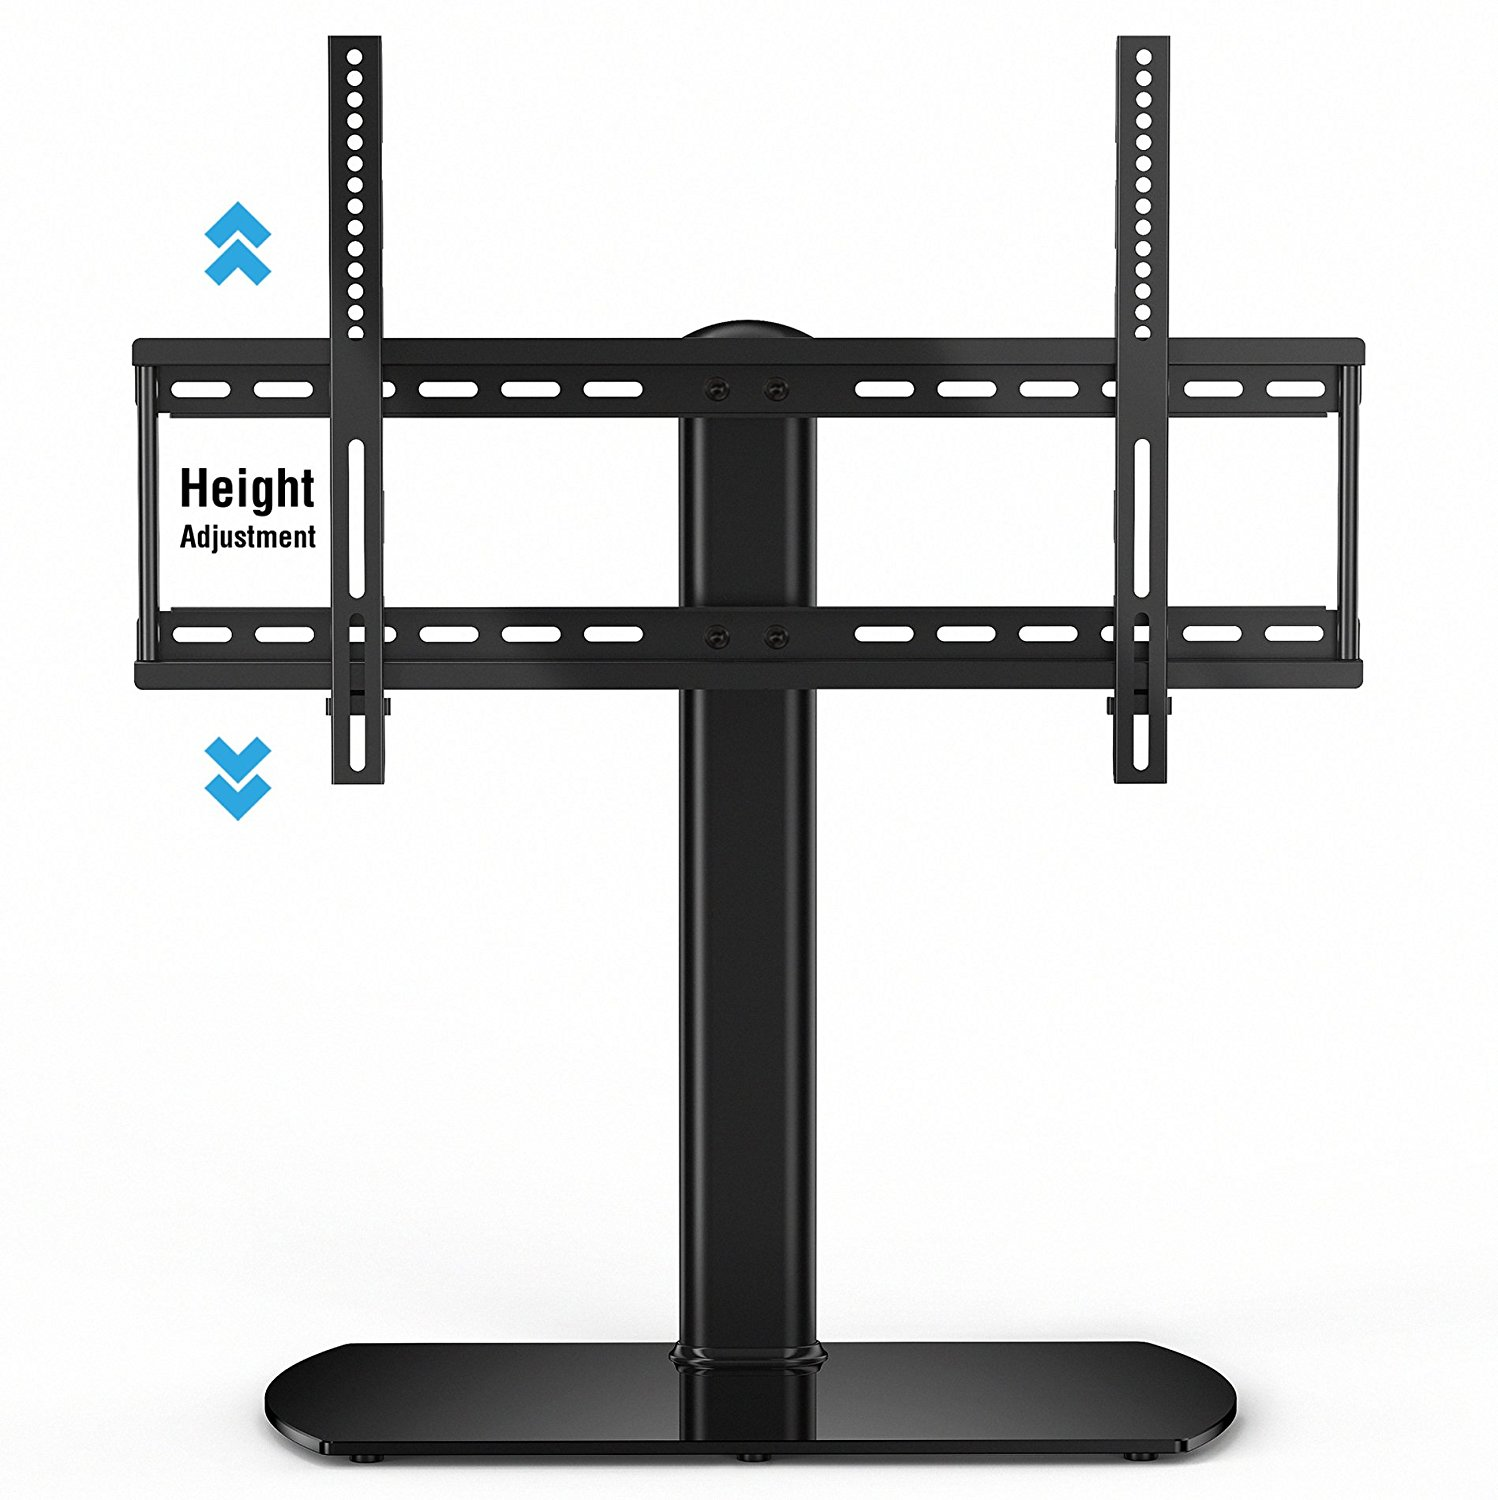 FITUEYES Universal tabletop TV Stand Base with Mount for 27 to 65 inch Samsung lg vizio Tv FTT107001GB